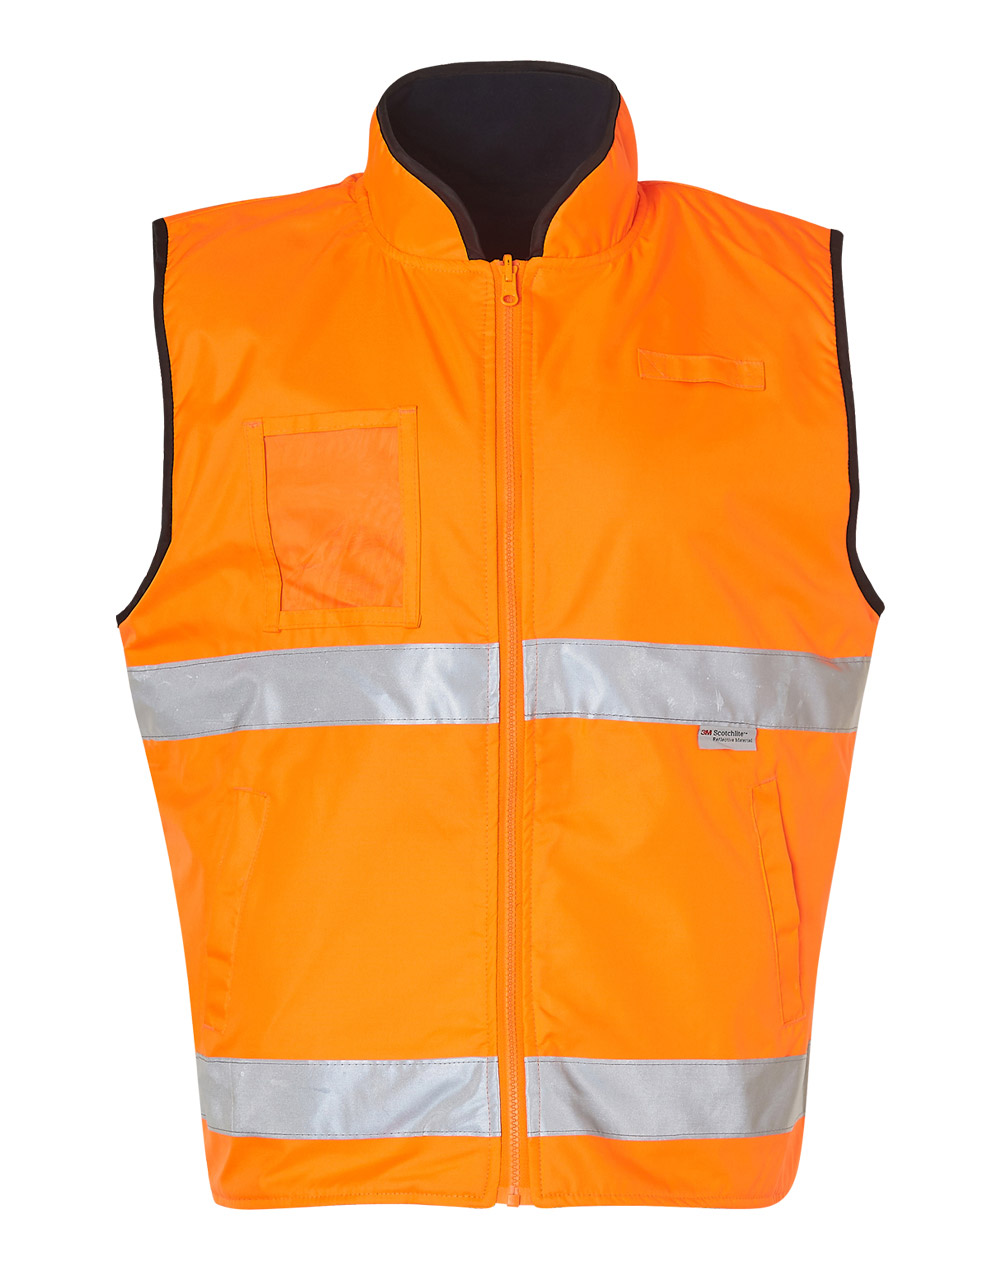 653a60c01ff7b High Visibility Reversible Mandarine Collar Safety Vest